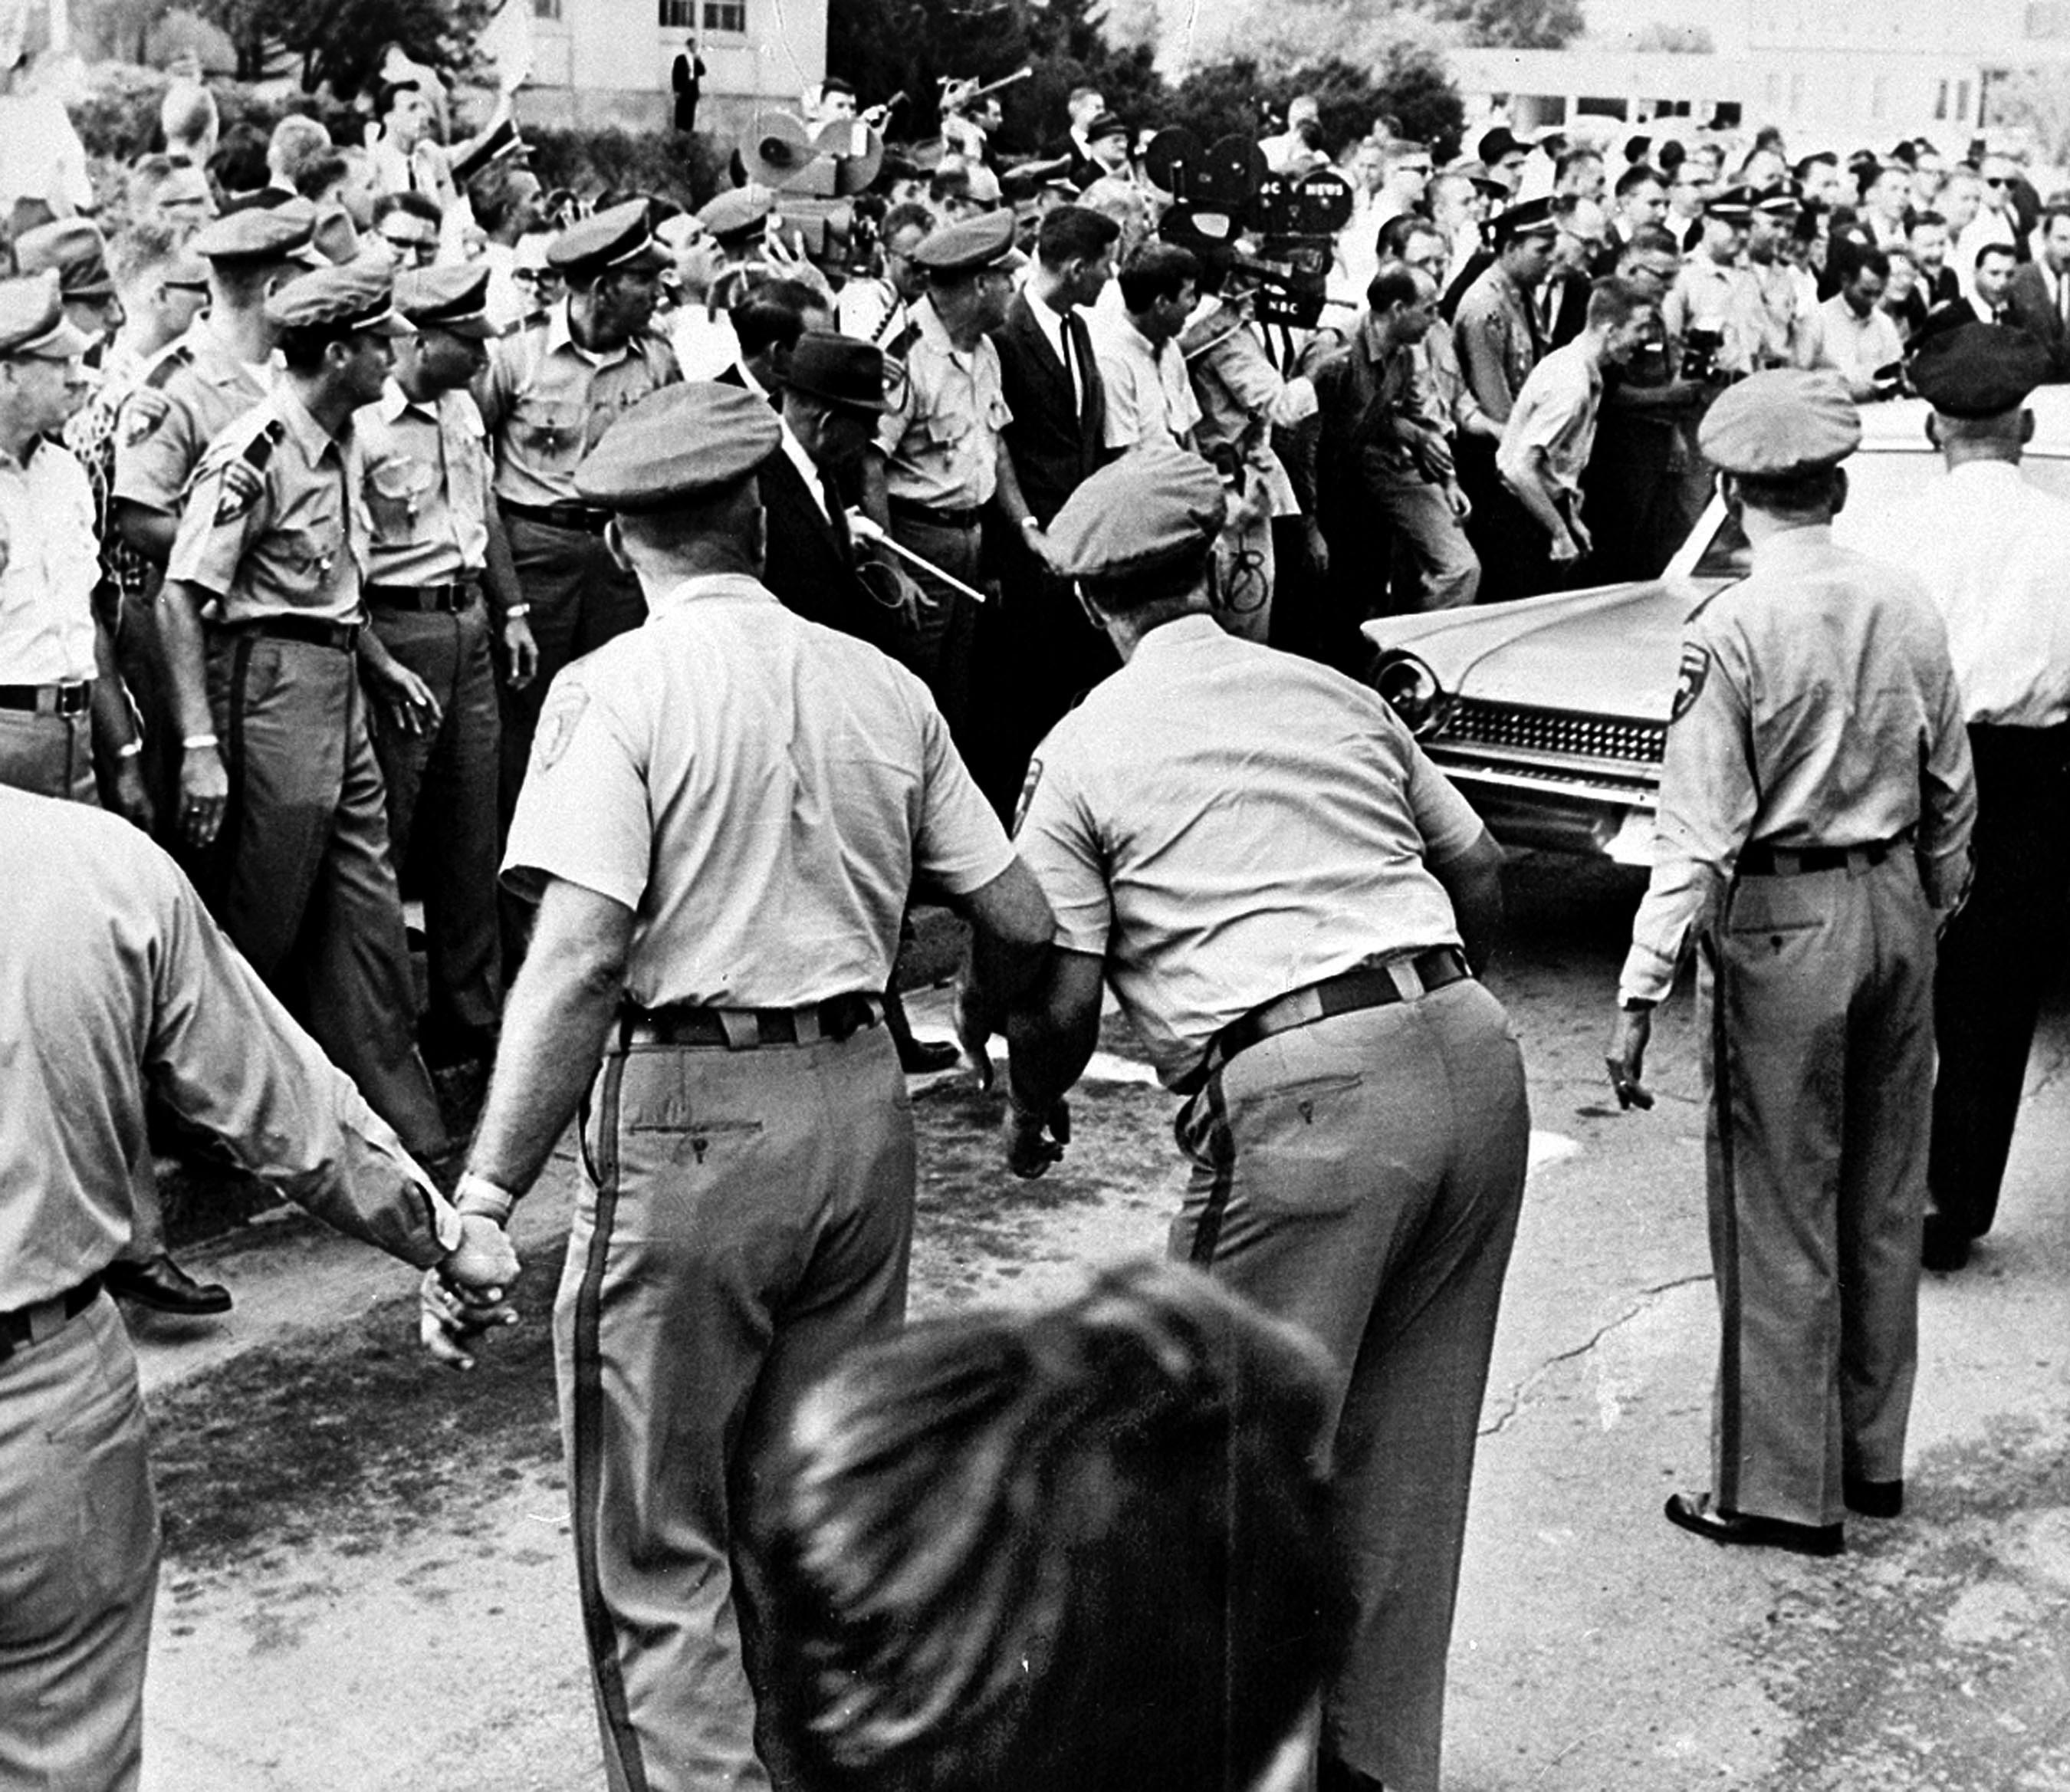 Policemen keep a cheering mob back as Meredith drives away after being refused admittance to the all-white university in Oxford, Miss. It took several attempts for him to enroll, as he was physically blocked on campus by Gov. Ross Barnett.